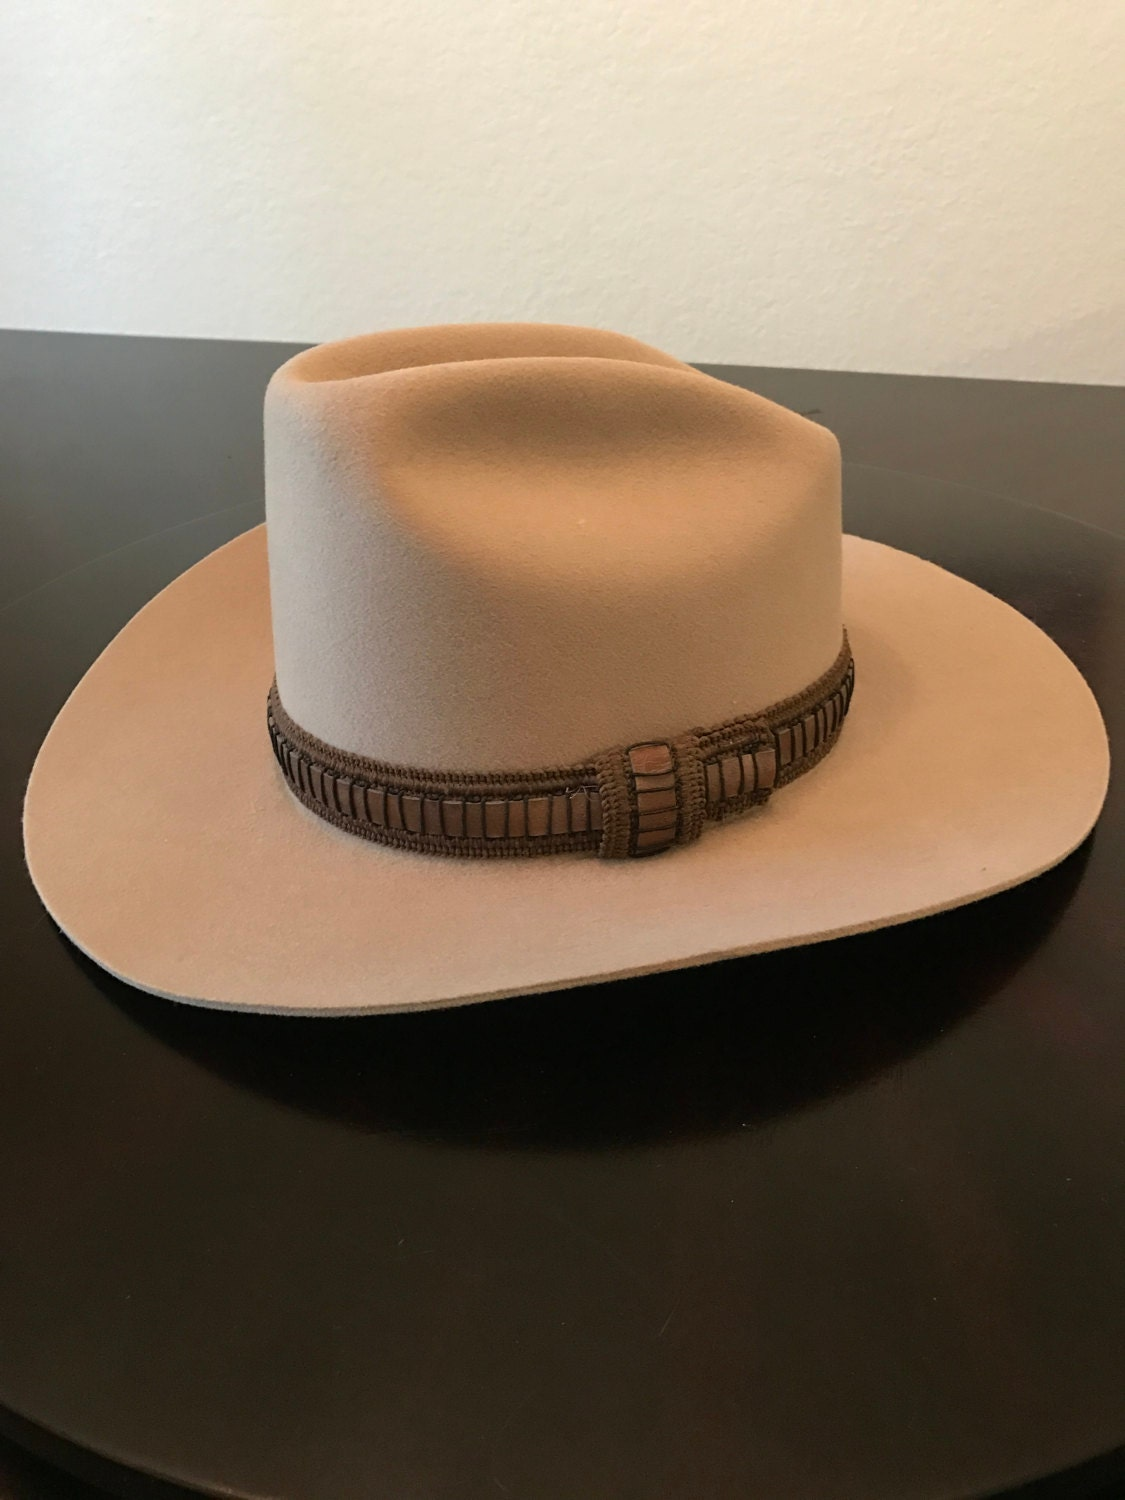 Vintage Levi s Cowboy Hat Rare 100% Wool Made in USA  f833e9d4a9a